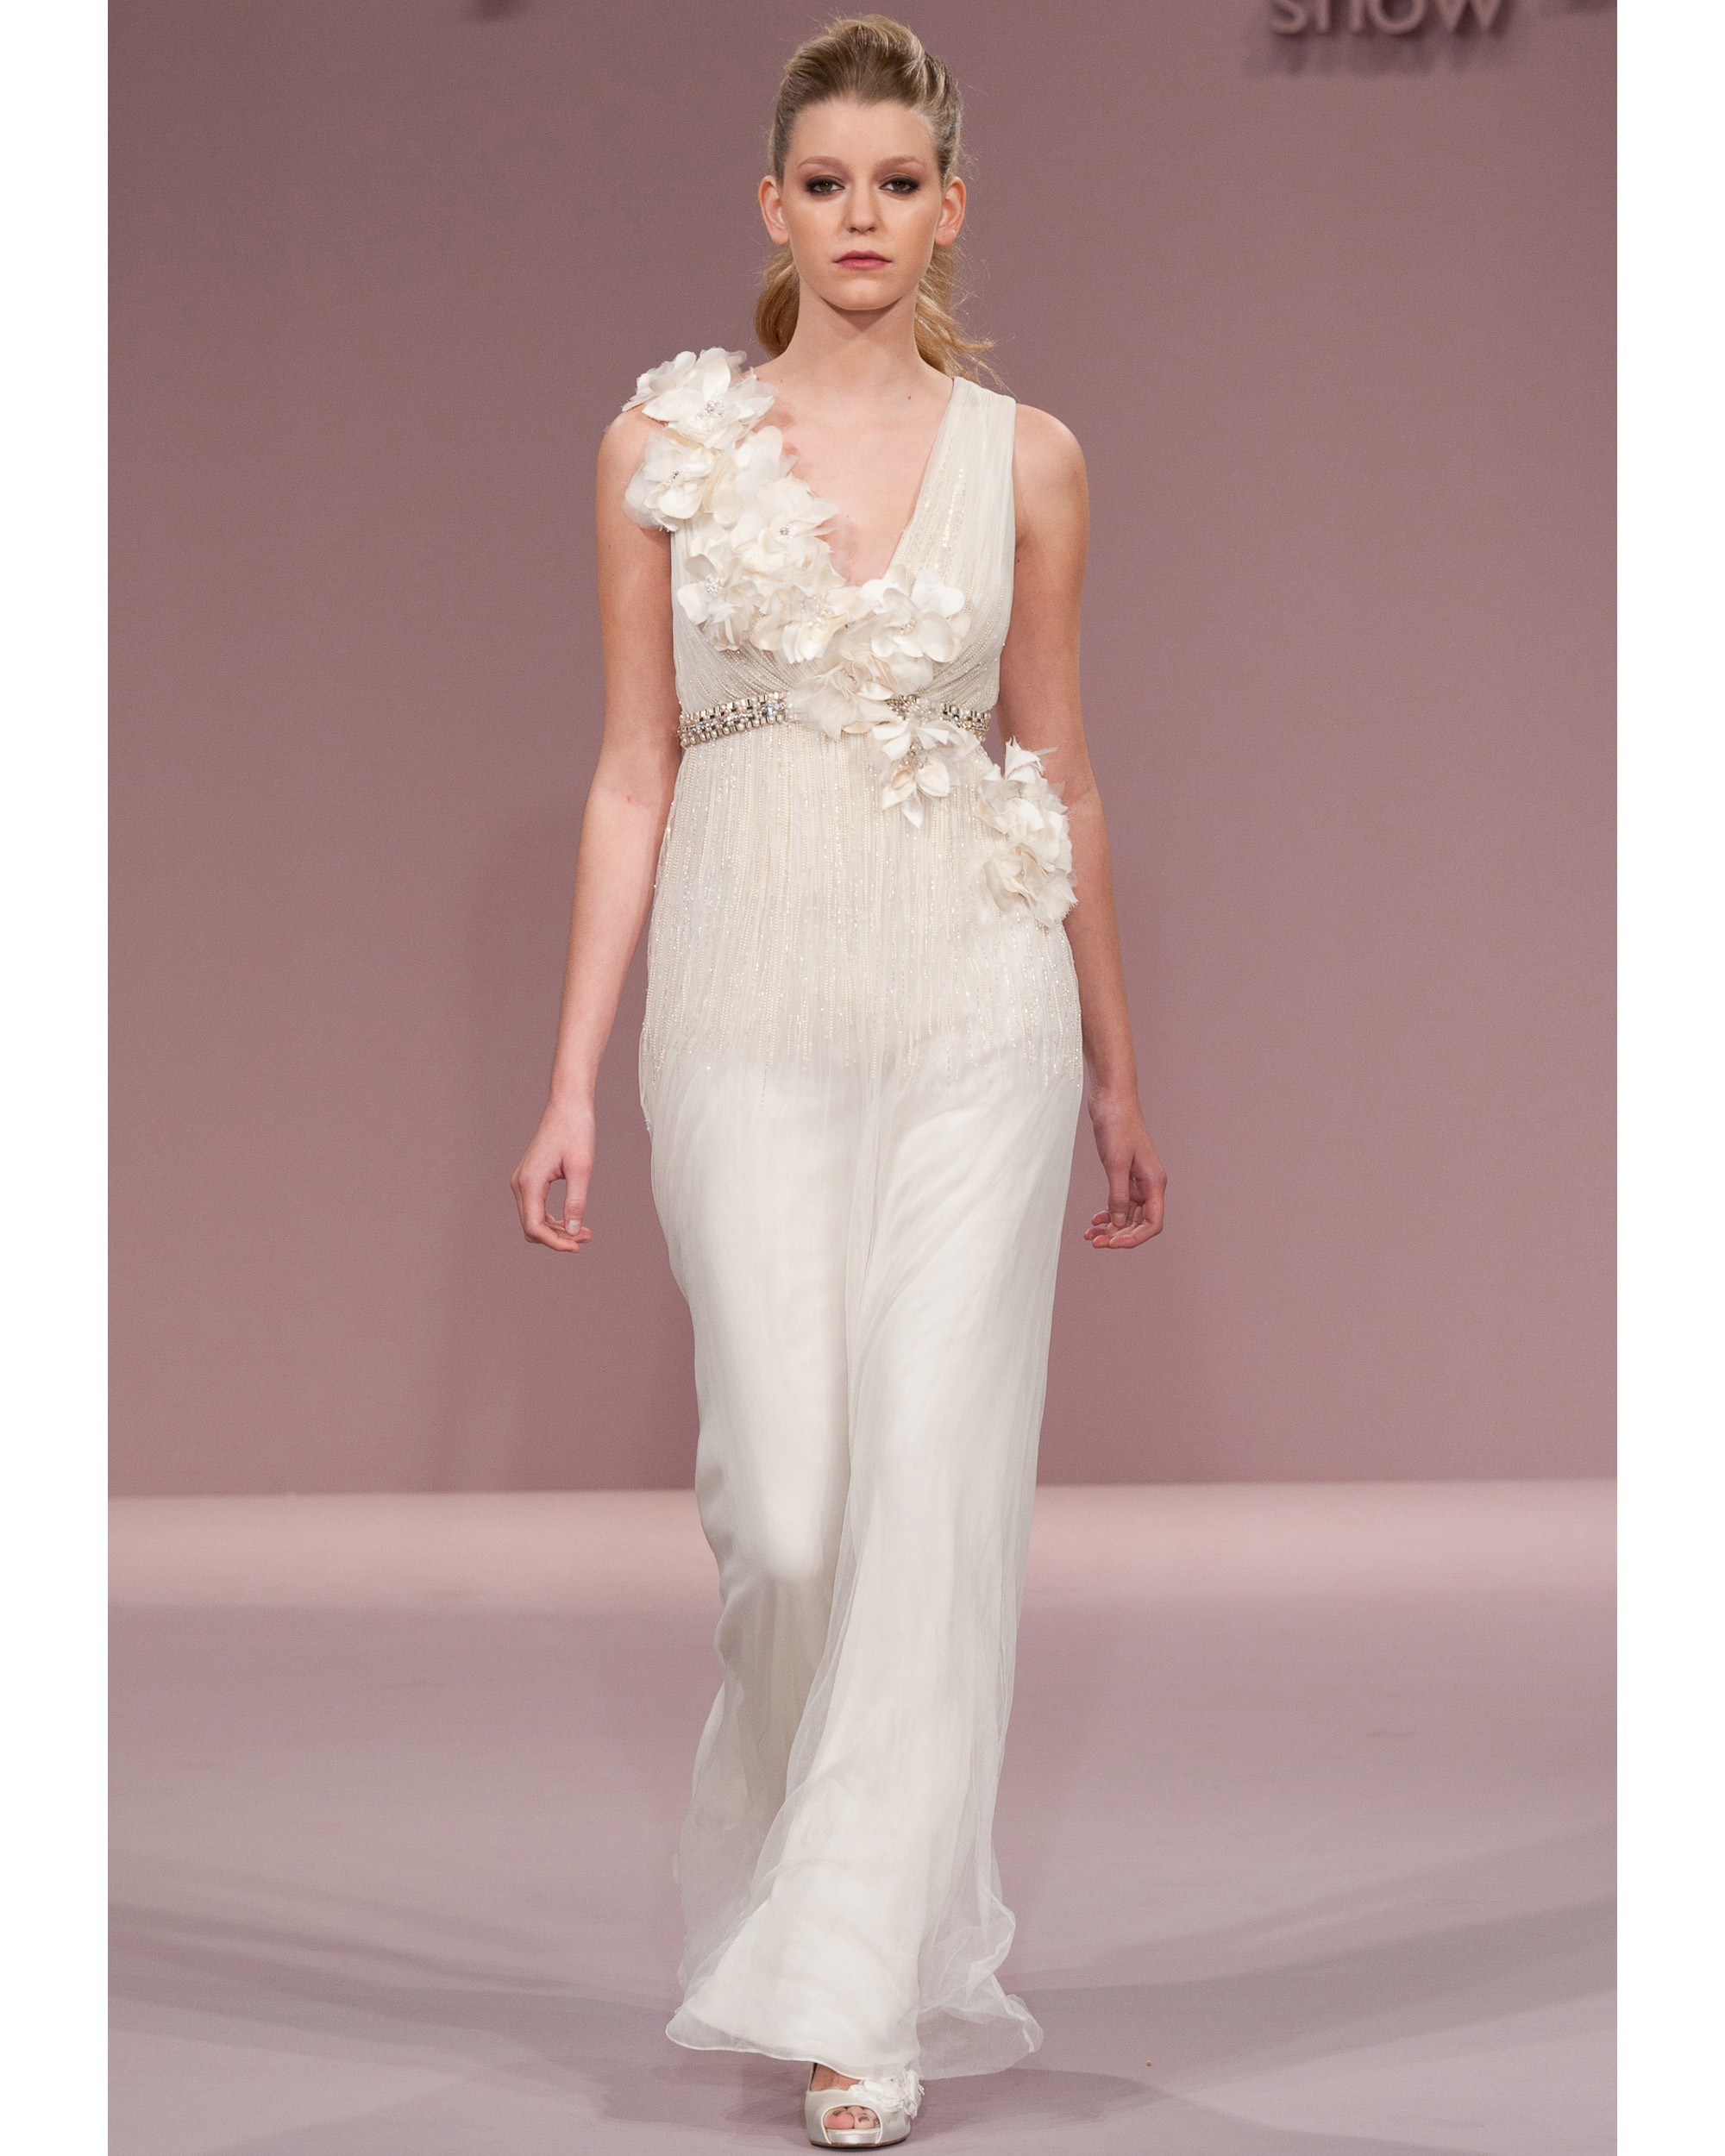 matthew-williamson-fall2012-wd108109-001.jpg